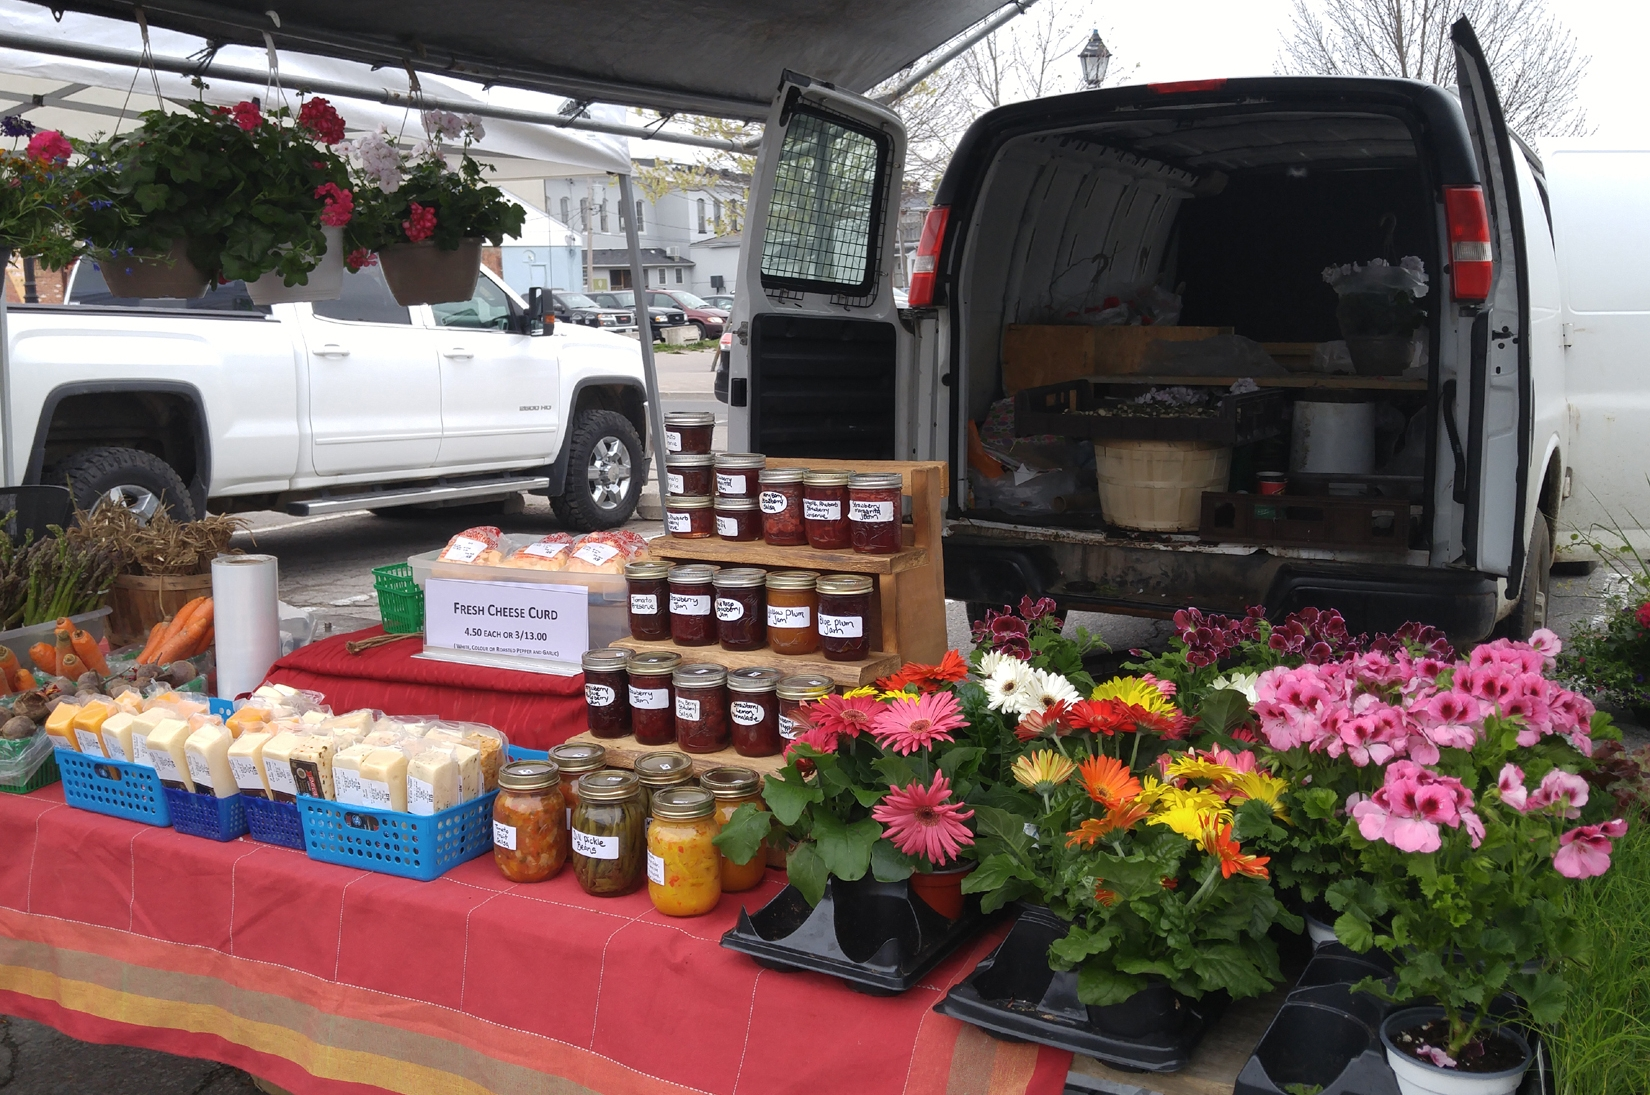 Flowers, jams, cheese and fresh produce.